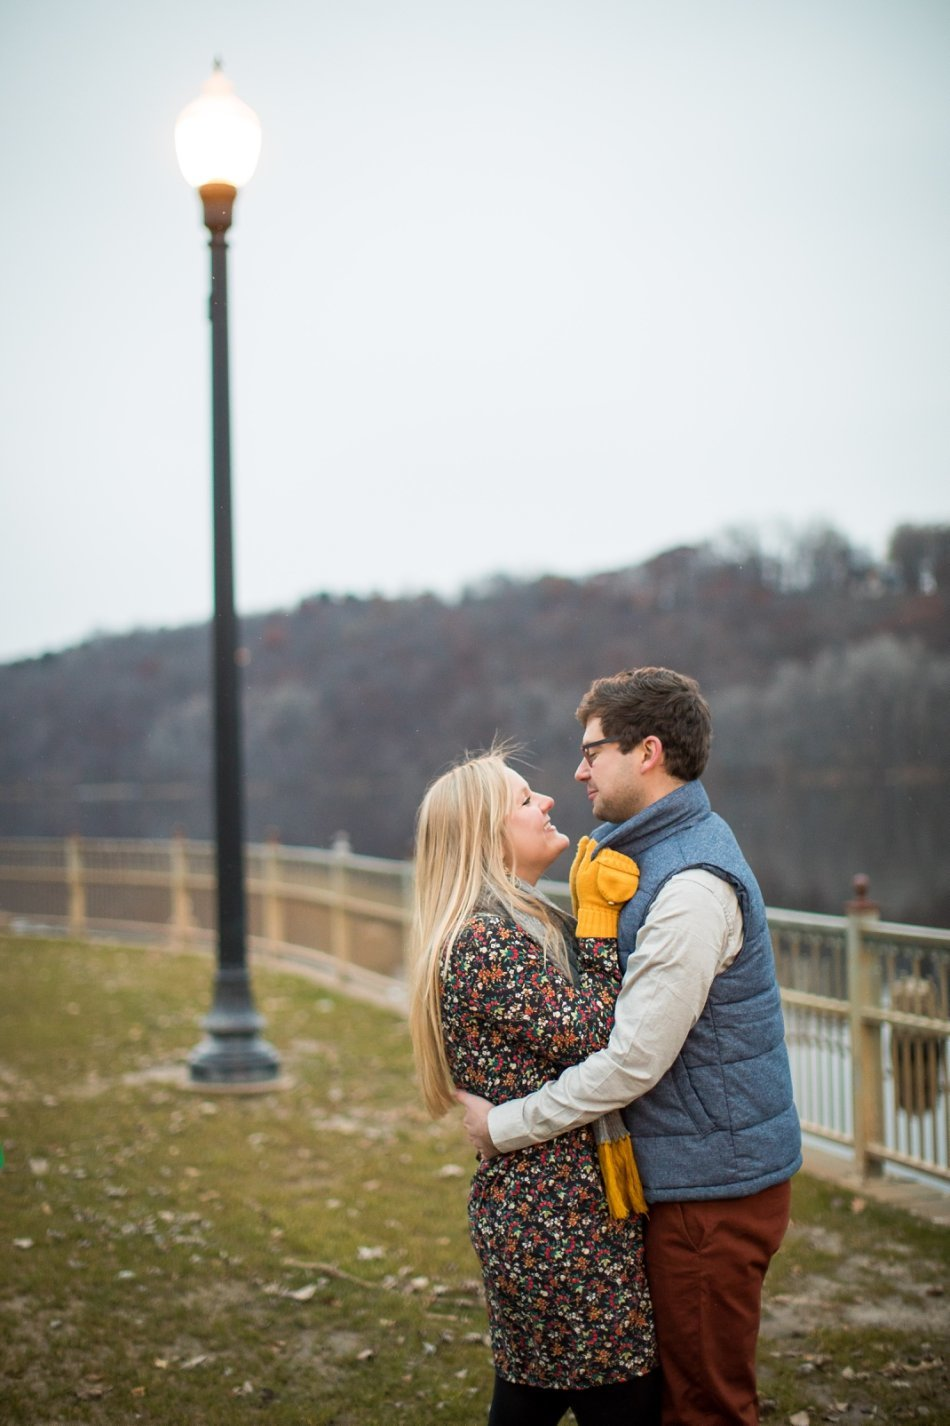 Twin Cities Engagement Photography - Rachel & Patrick (36)